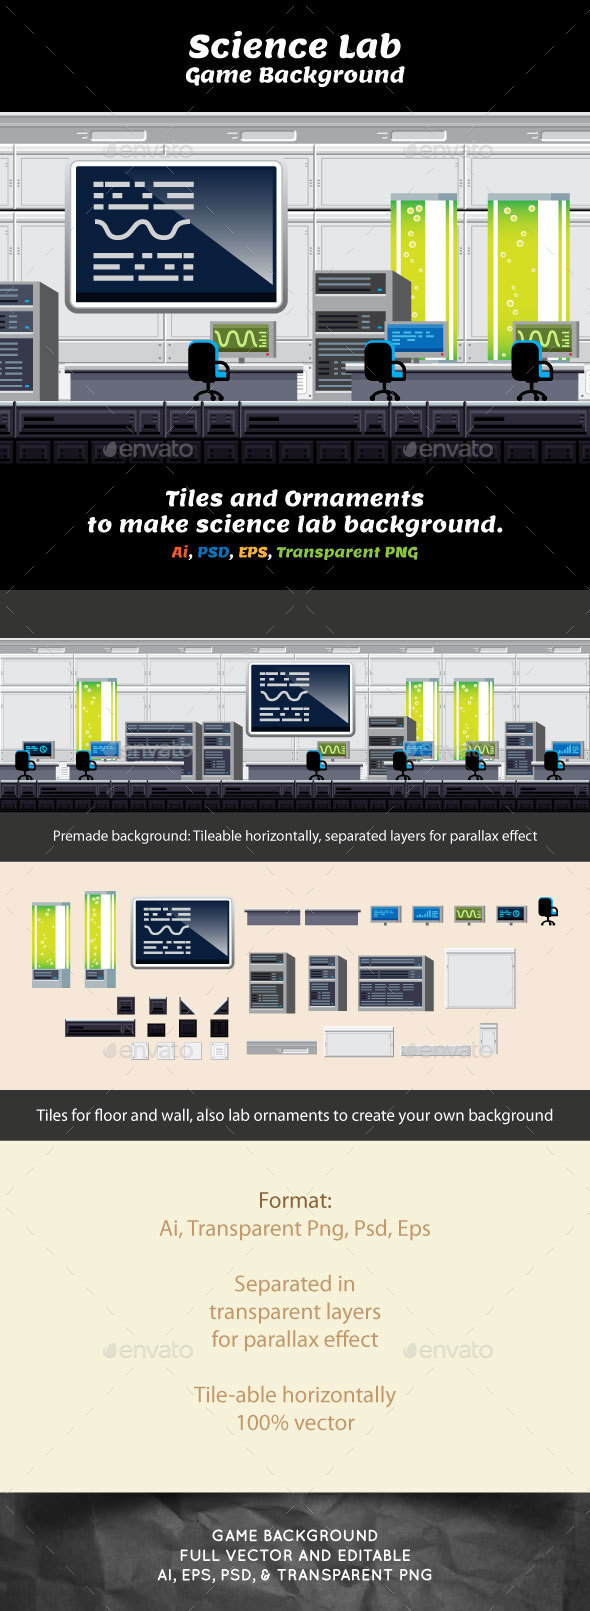 GraphicRiver Indoor Game Backround Science Laboratory 20776795